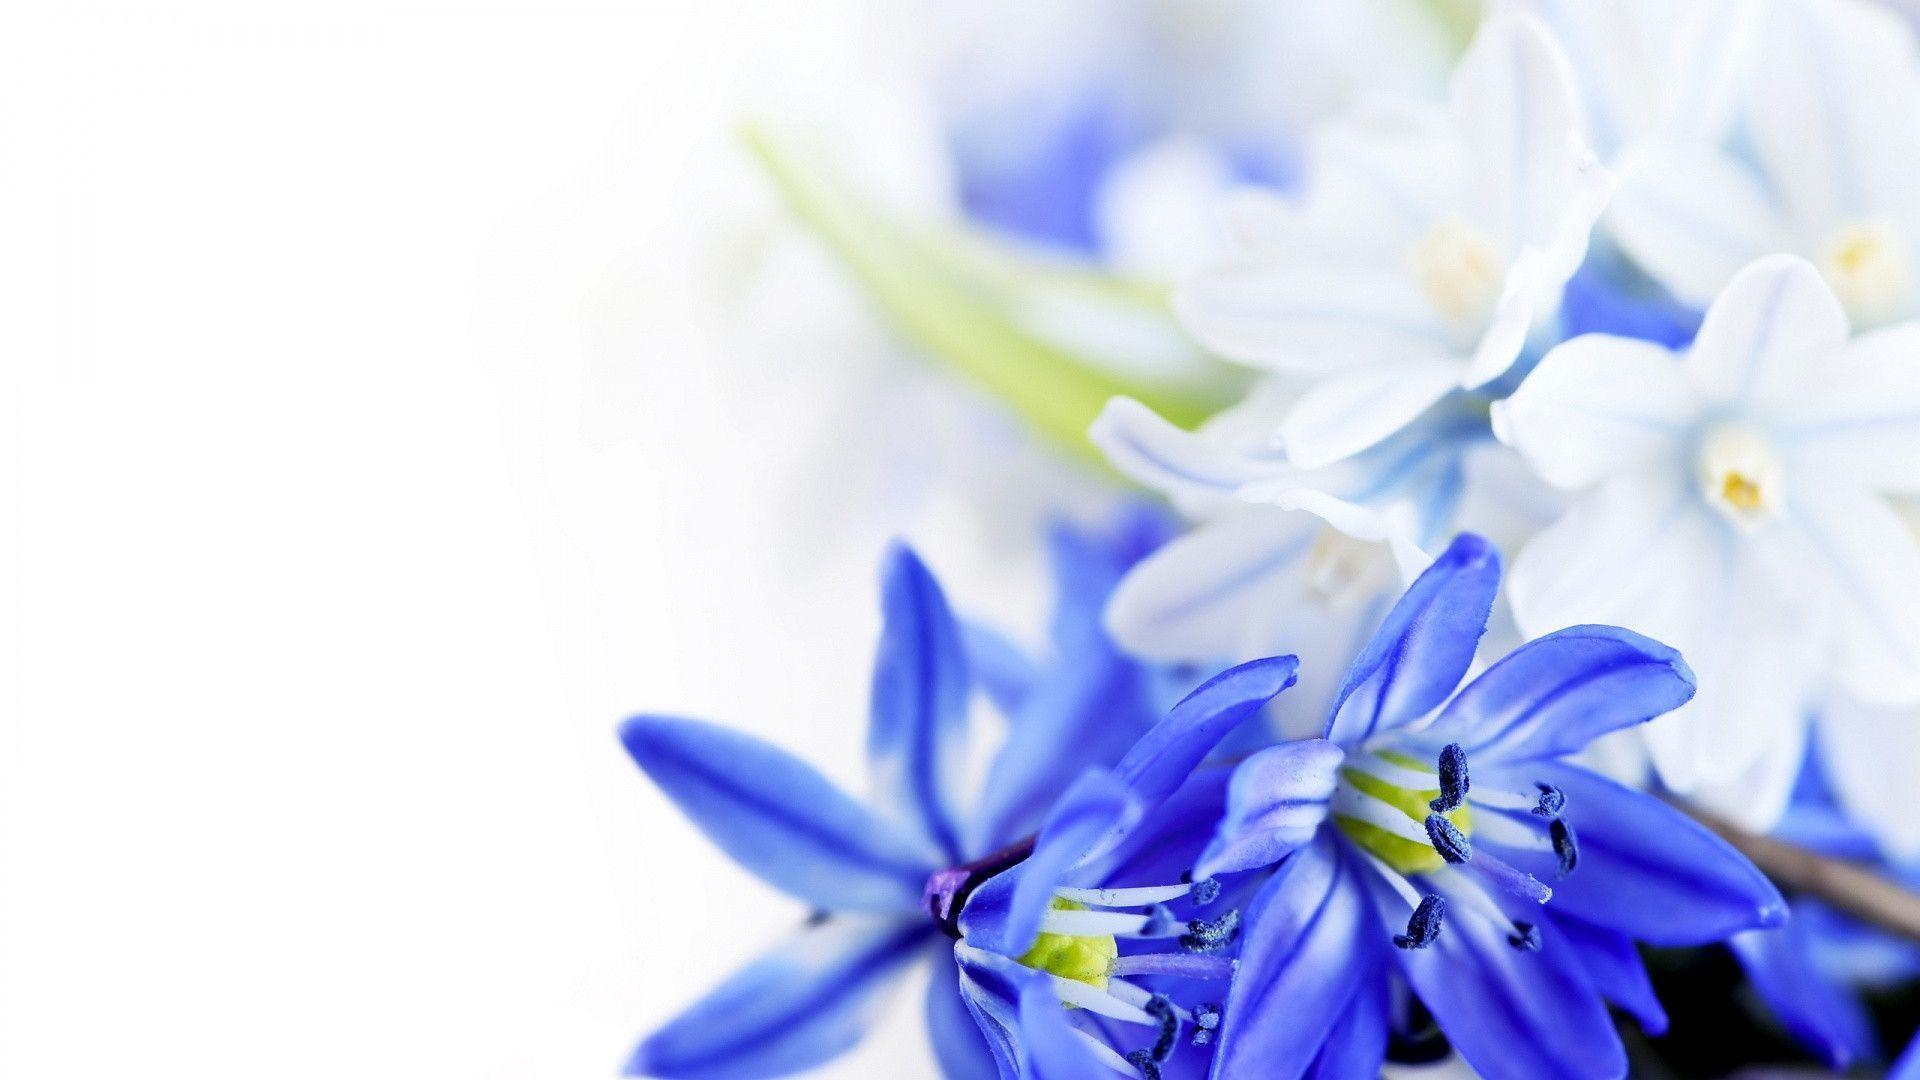 Blue flower wallpapers wallpaper cave blue and white flower flower wallpapers wholles mightylinksfo